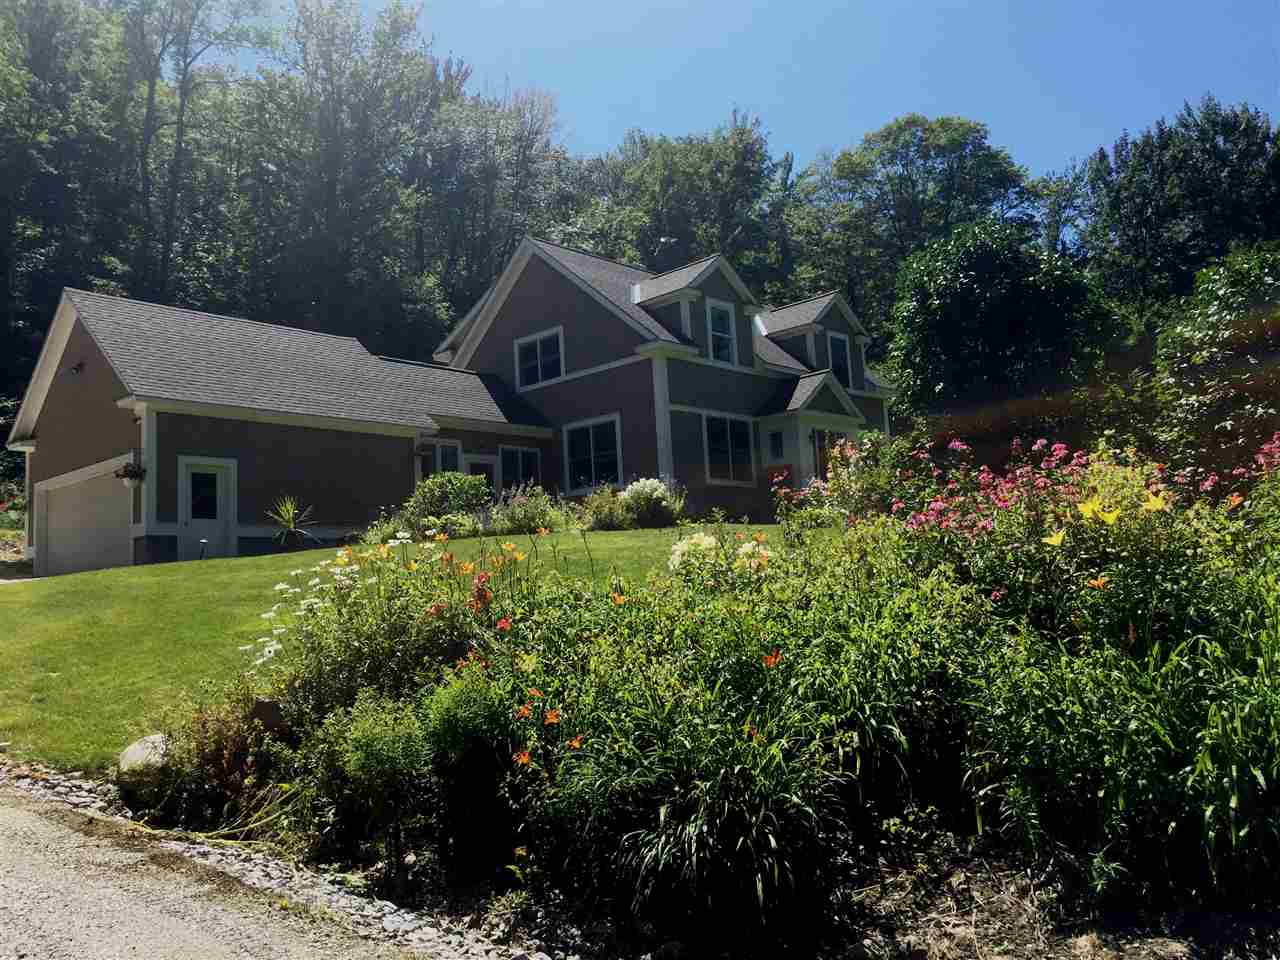 Sold property in Hinesburg